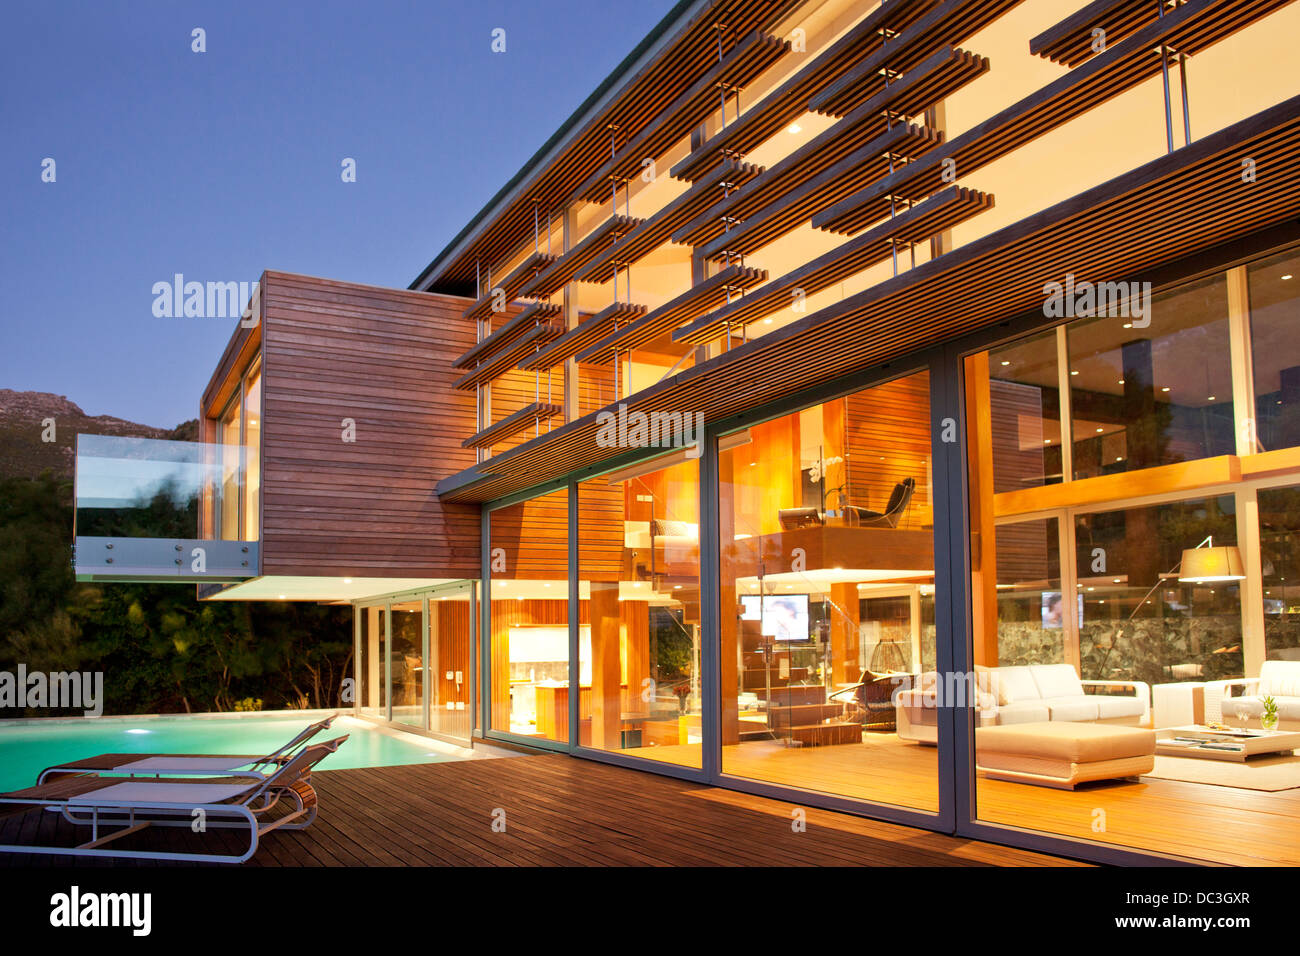 Swimming pool and modern house at night - Stock Image